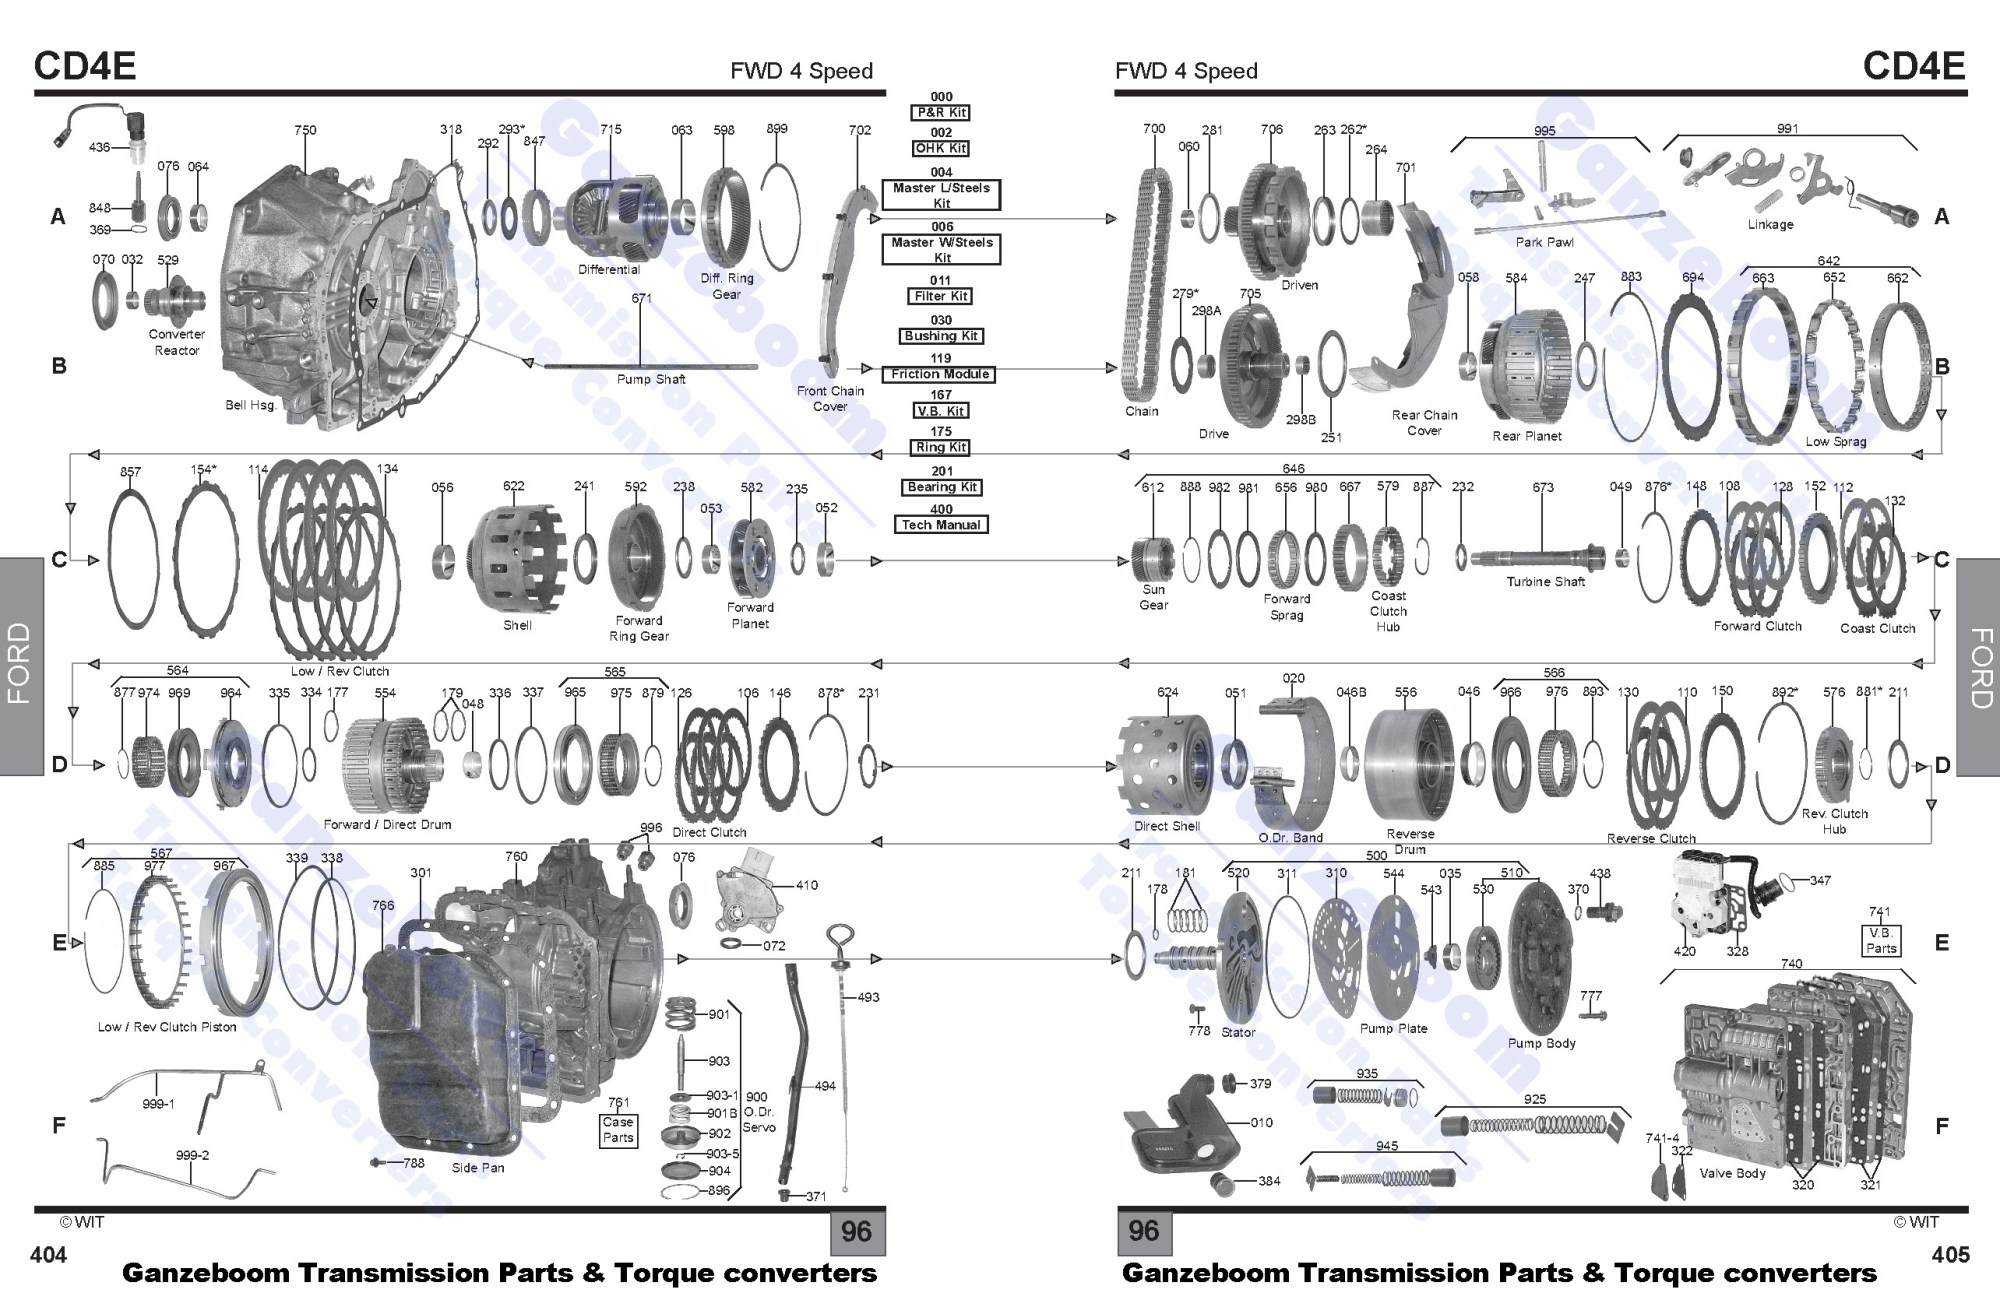 hight resolution of tags e40d wiring diagram e40d transmission diagram e4od wiring diagram e4od transmission wiring diagram e4od transmission valve body diagram e4od mlps